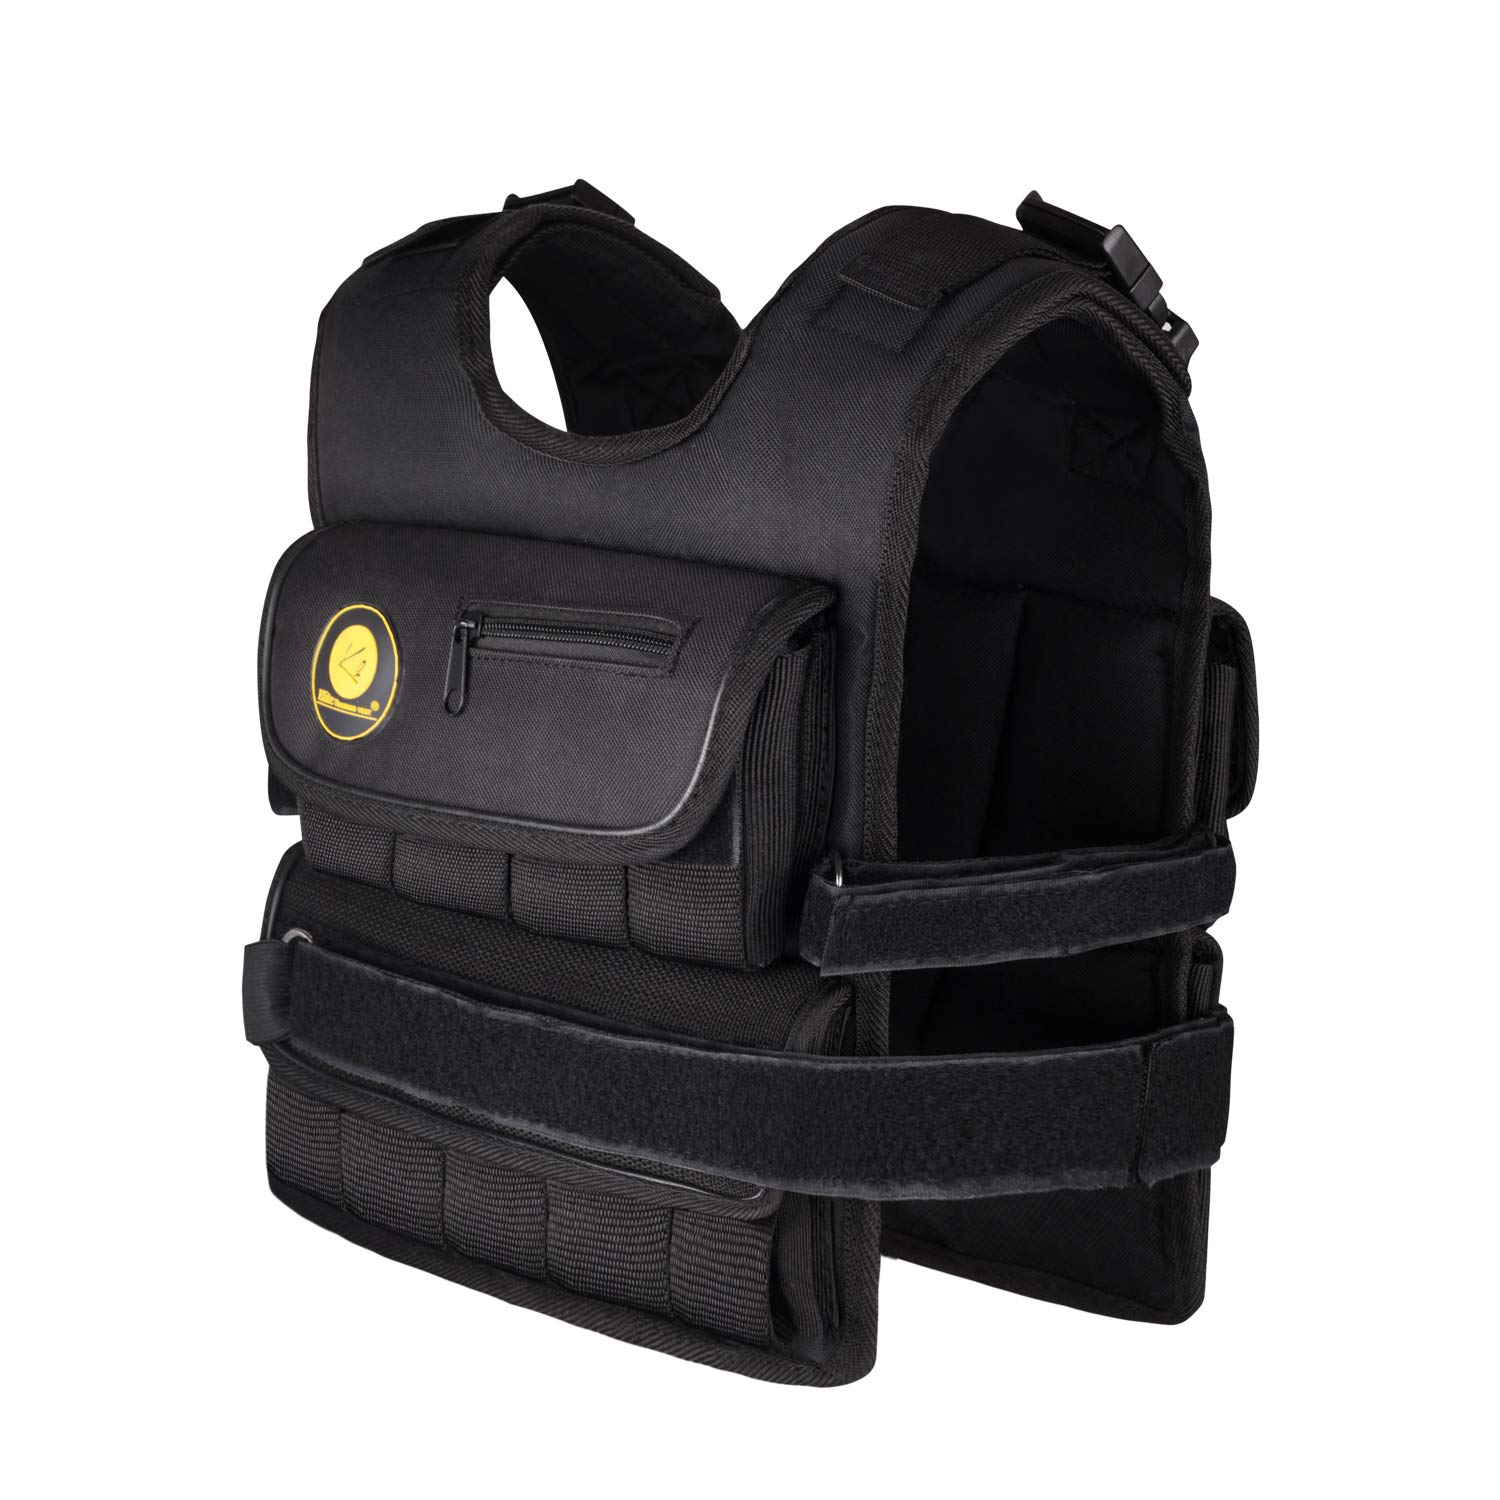 K2Elite Weighted Vest Short & Narrow Style for Men 10lbs~60lbs Adjustable Cross Training Workout Black (0 lbs)